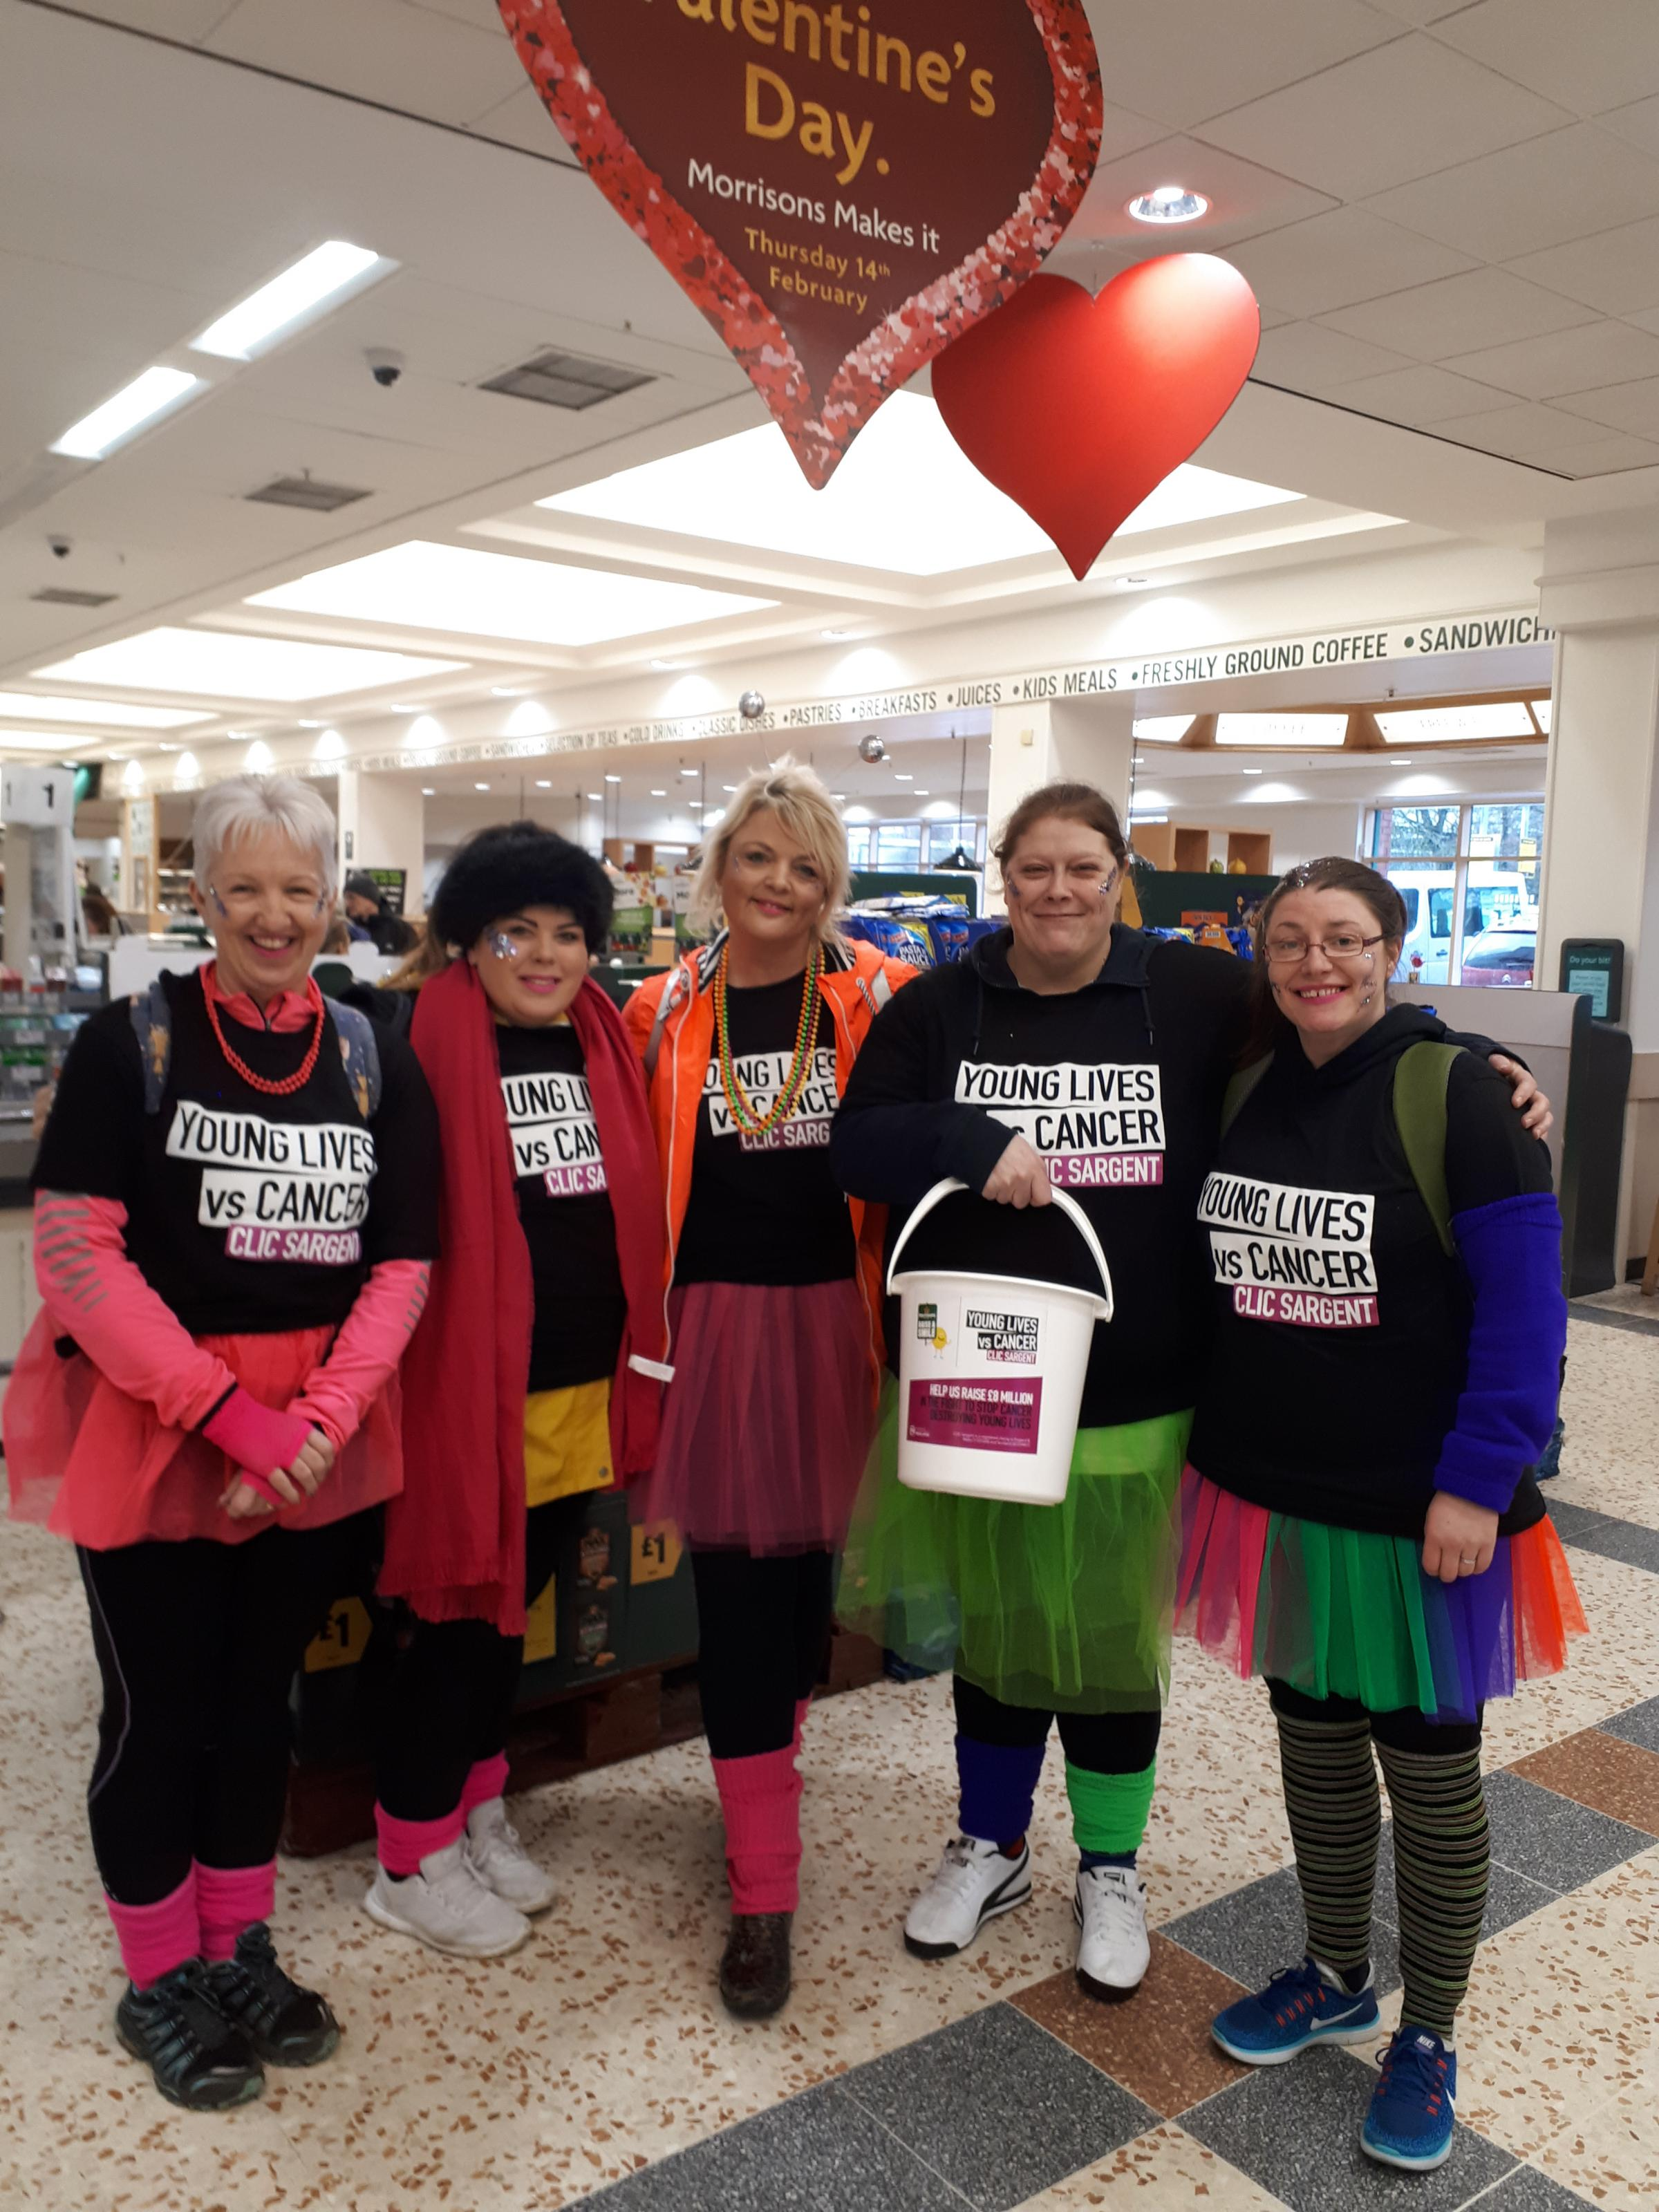 Morrisons staff who walked from Keighley to Skipton to help youngsters with cancer. From left, Diane Barker, Nicole McGuinness, Alison Emmott, Leanne Wilson and Claire Wilson.